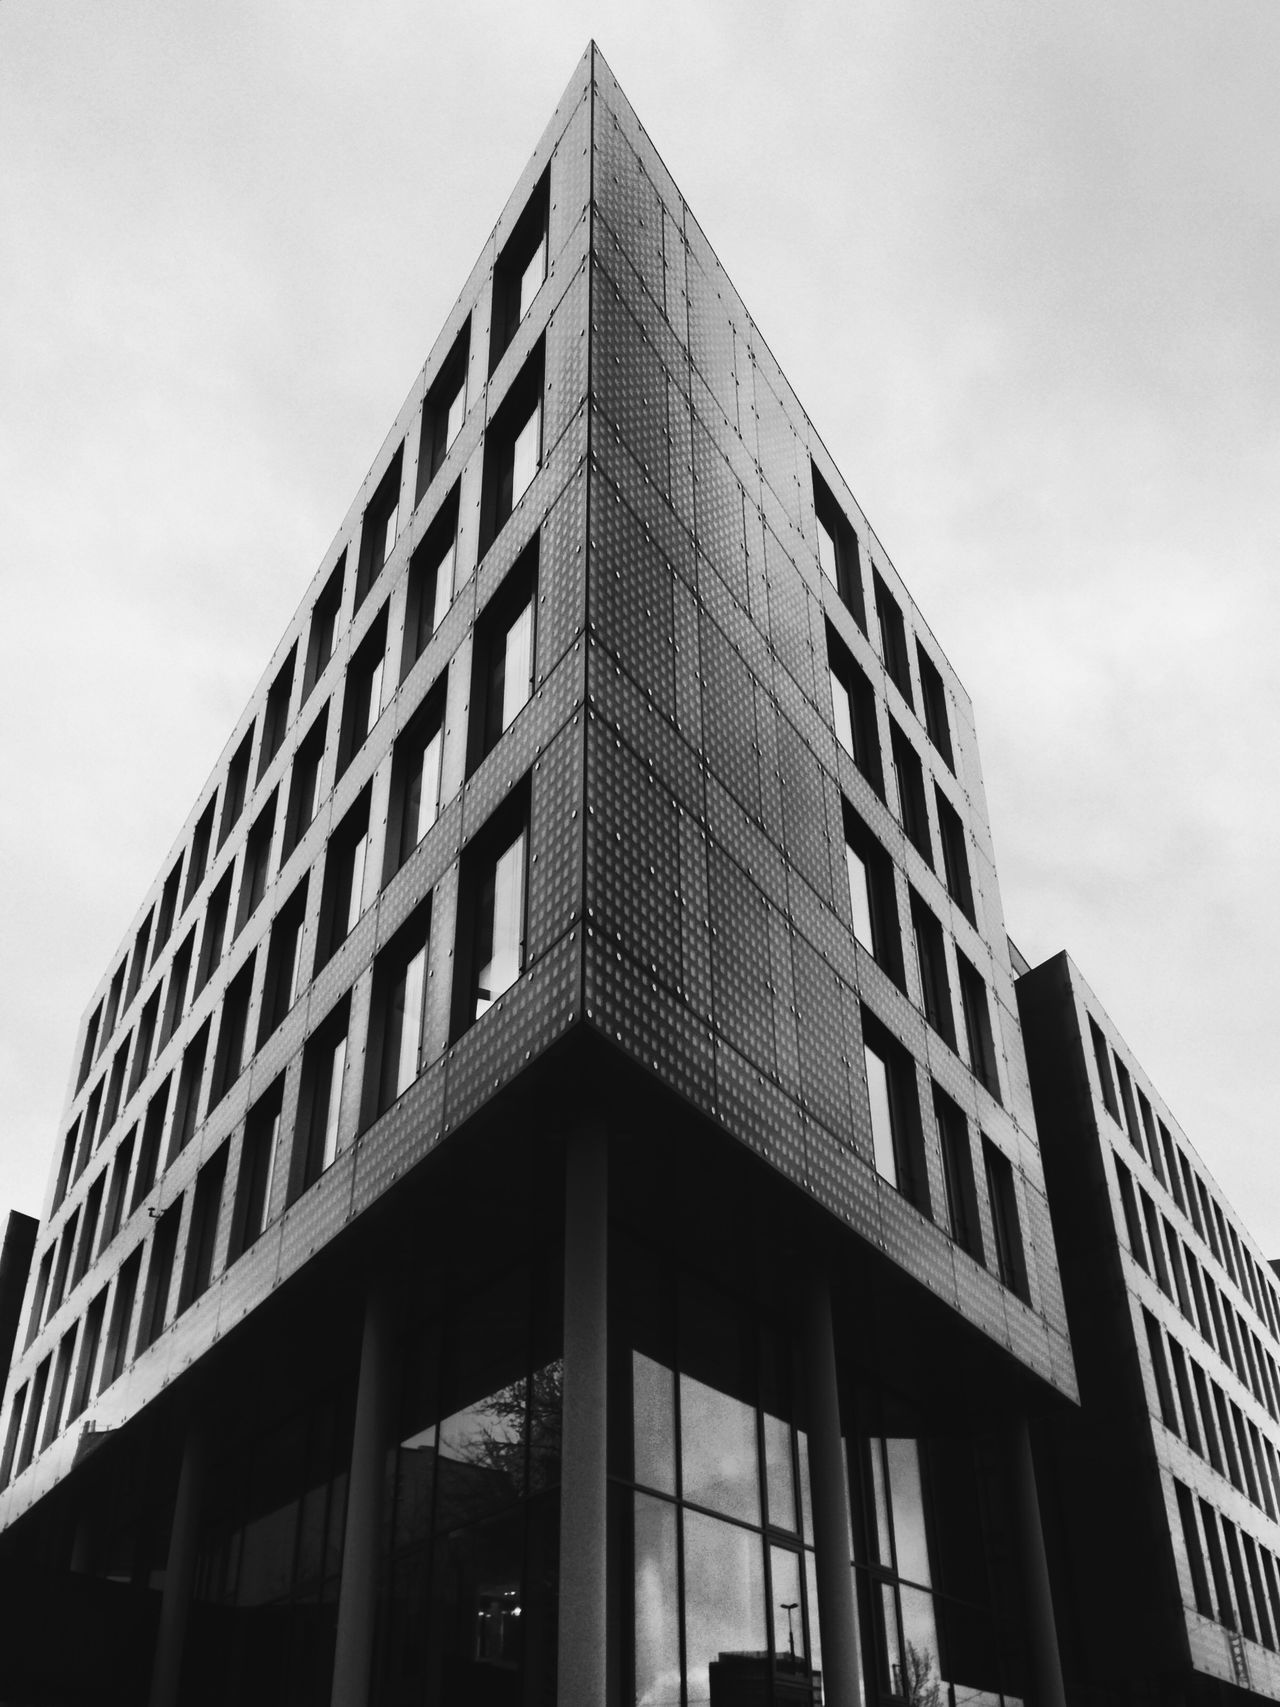 Beautiful stock photos of schwarz, architecture, low angle view, building exterior, built structure